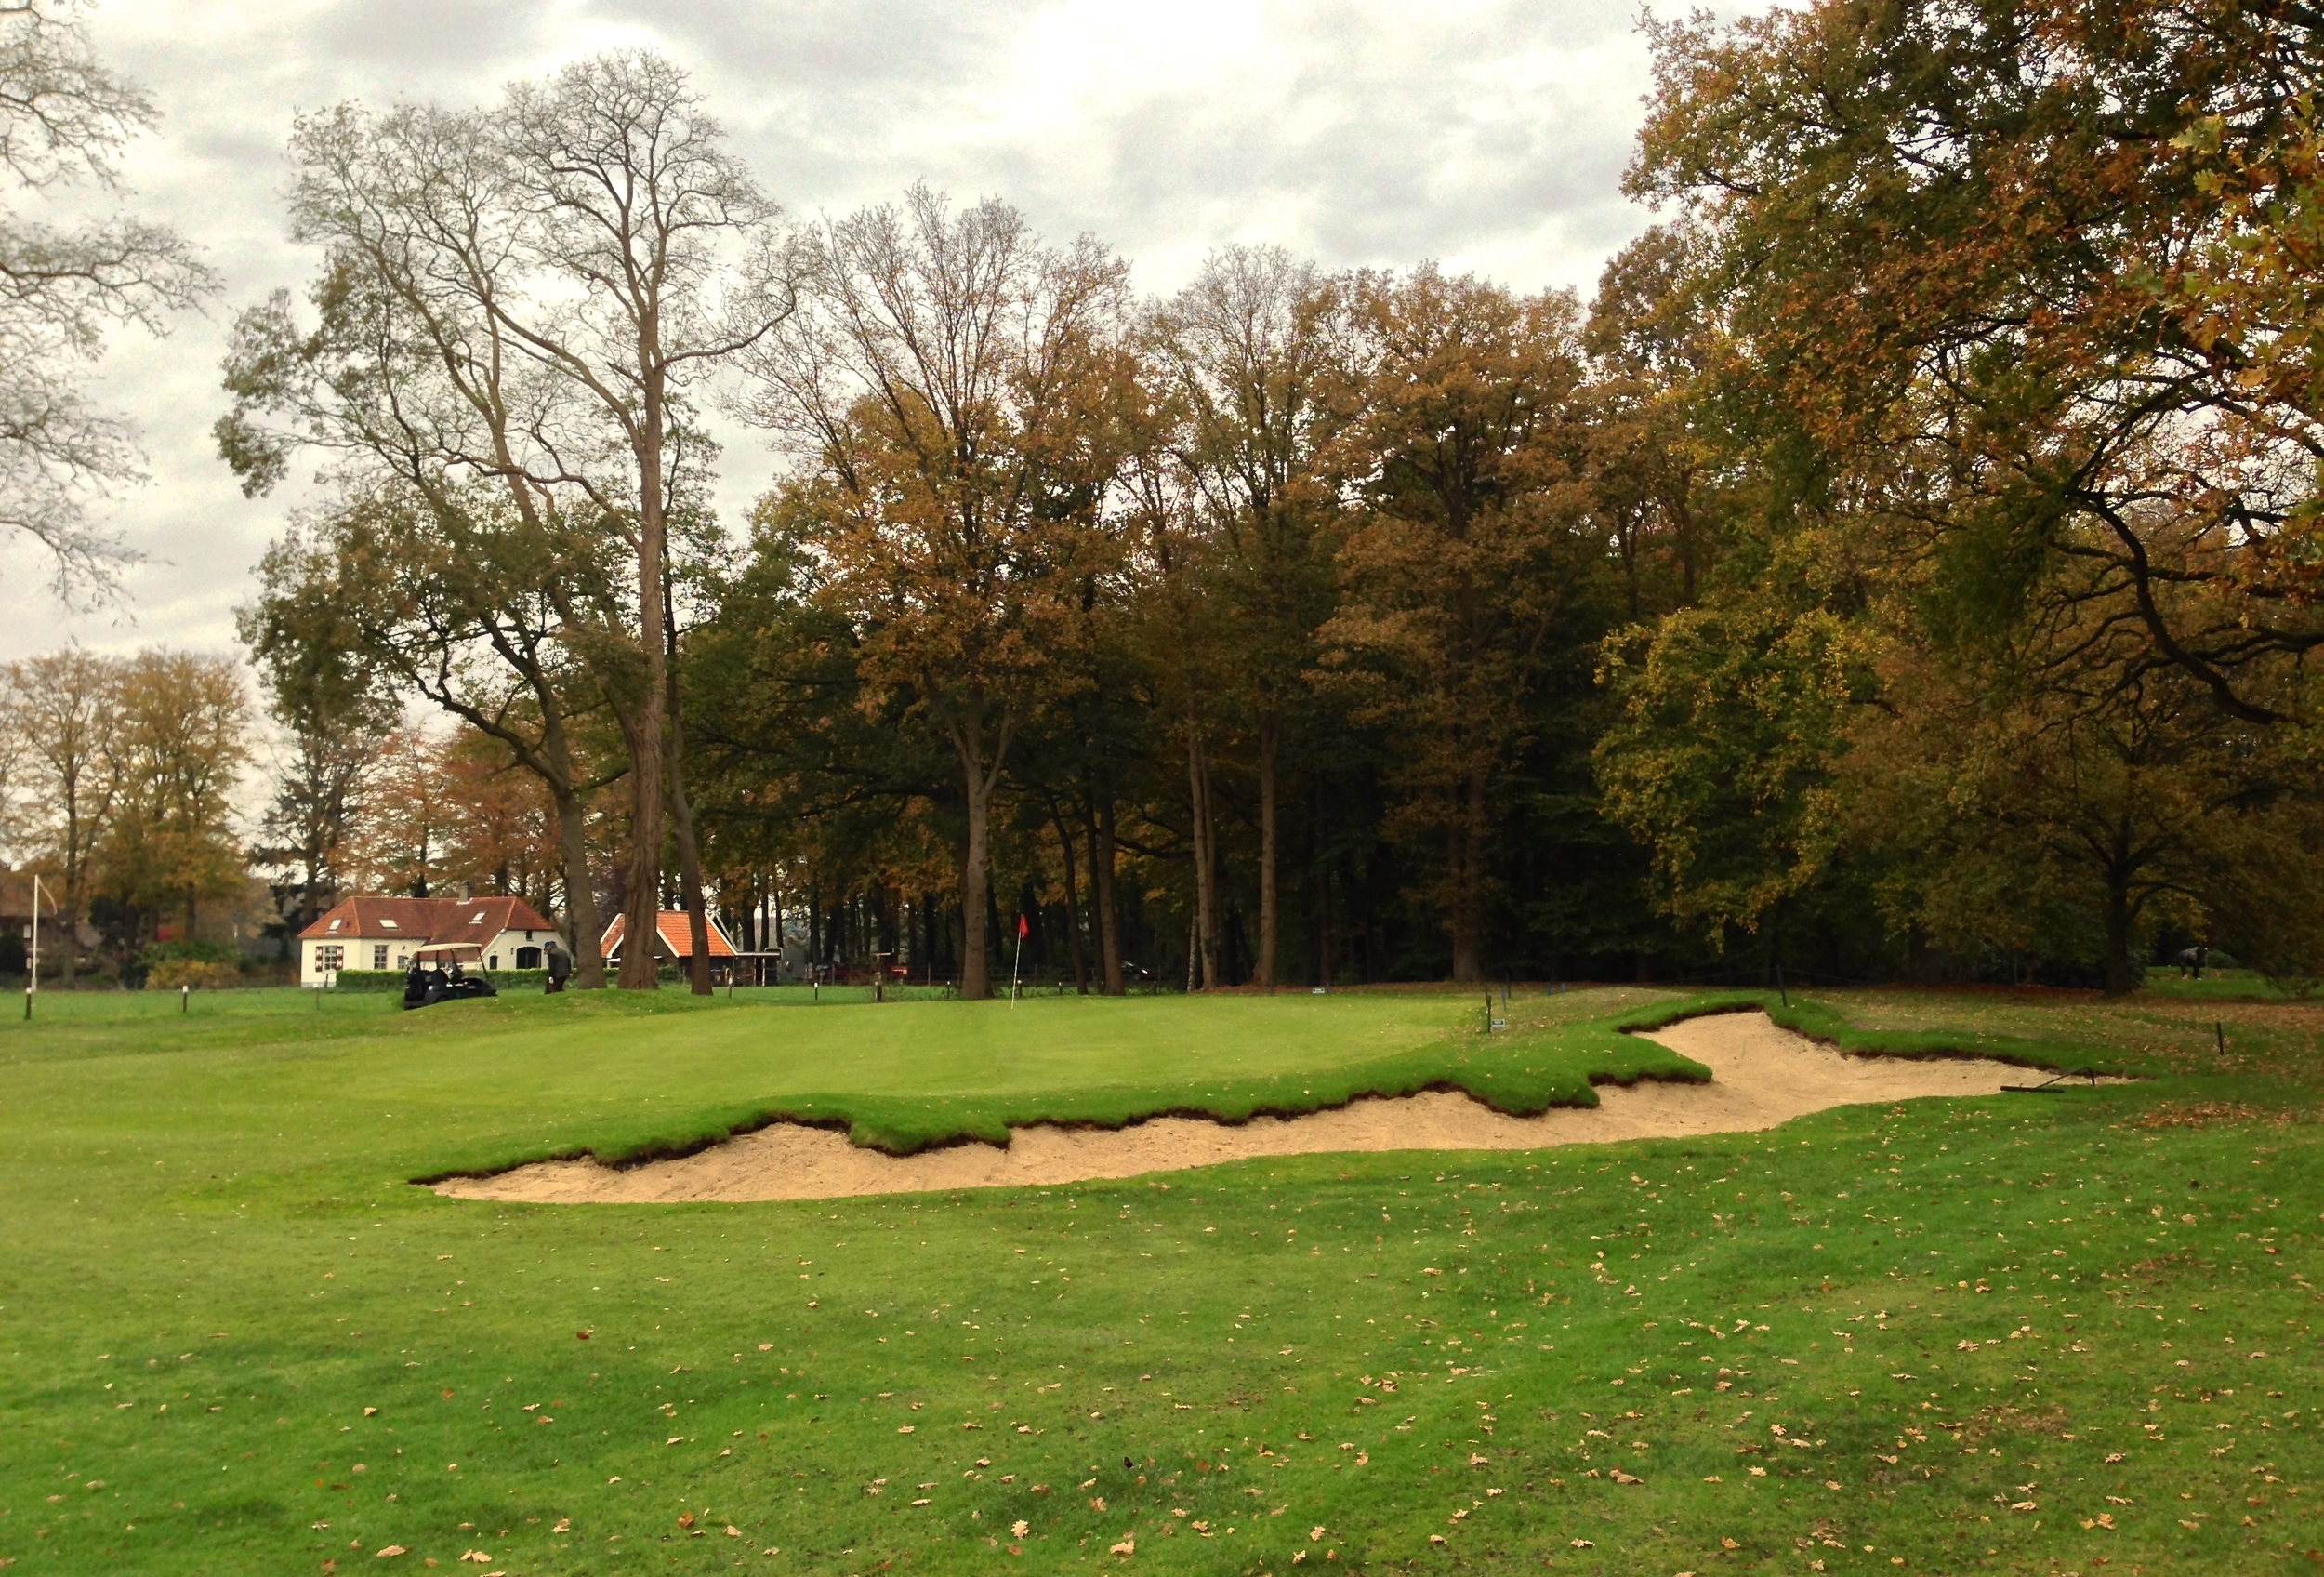 A closer view of the new bunker at the 6th.  Note in both images that an effort was made to make the left side mound irregular and naturally shaped as opposed to a more spherical mound.